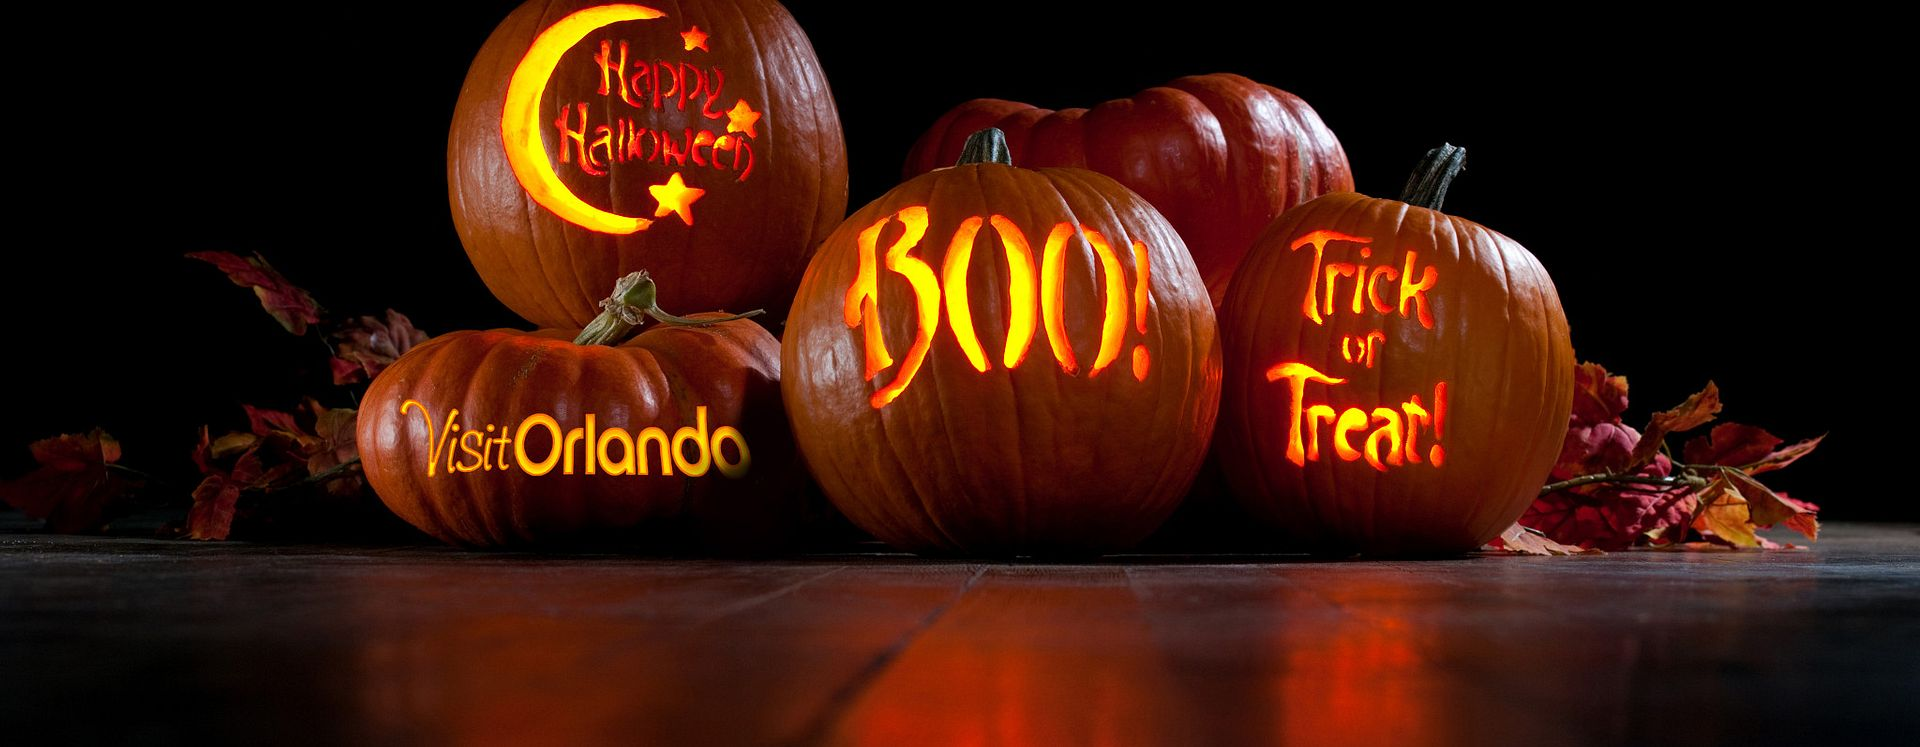 Pumpkins piled on top of each other with different sayings carved out for Halloween in Orlando